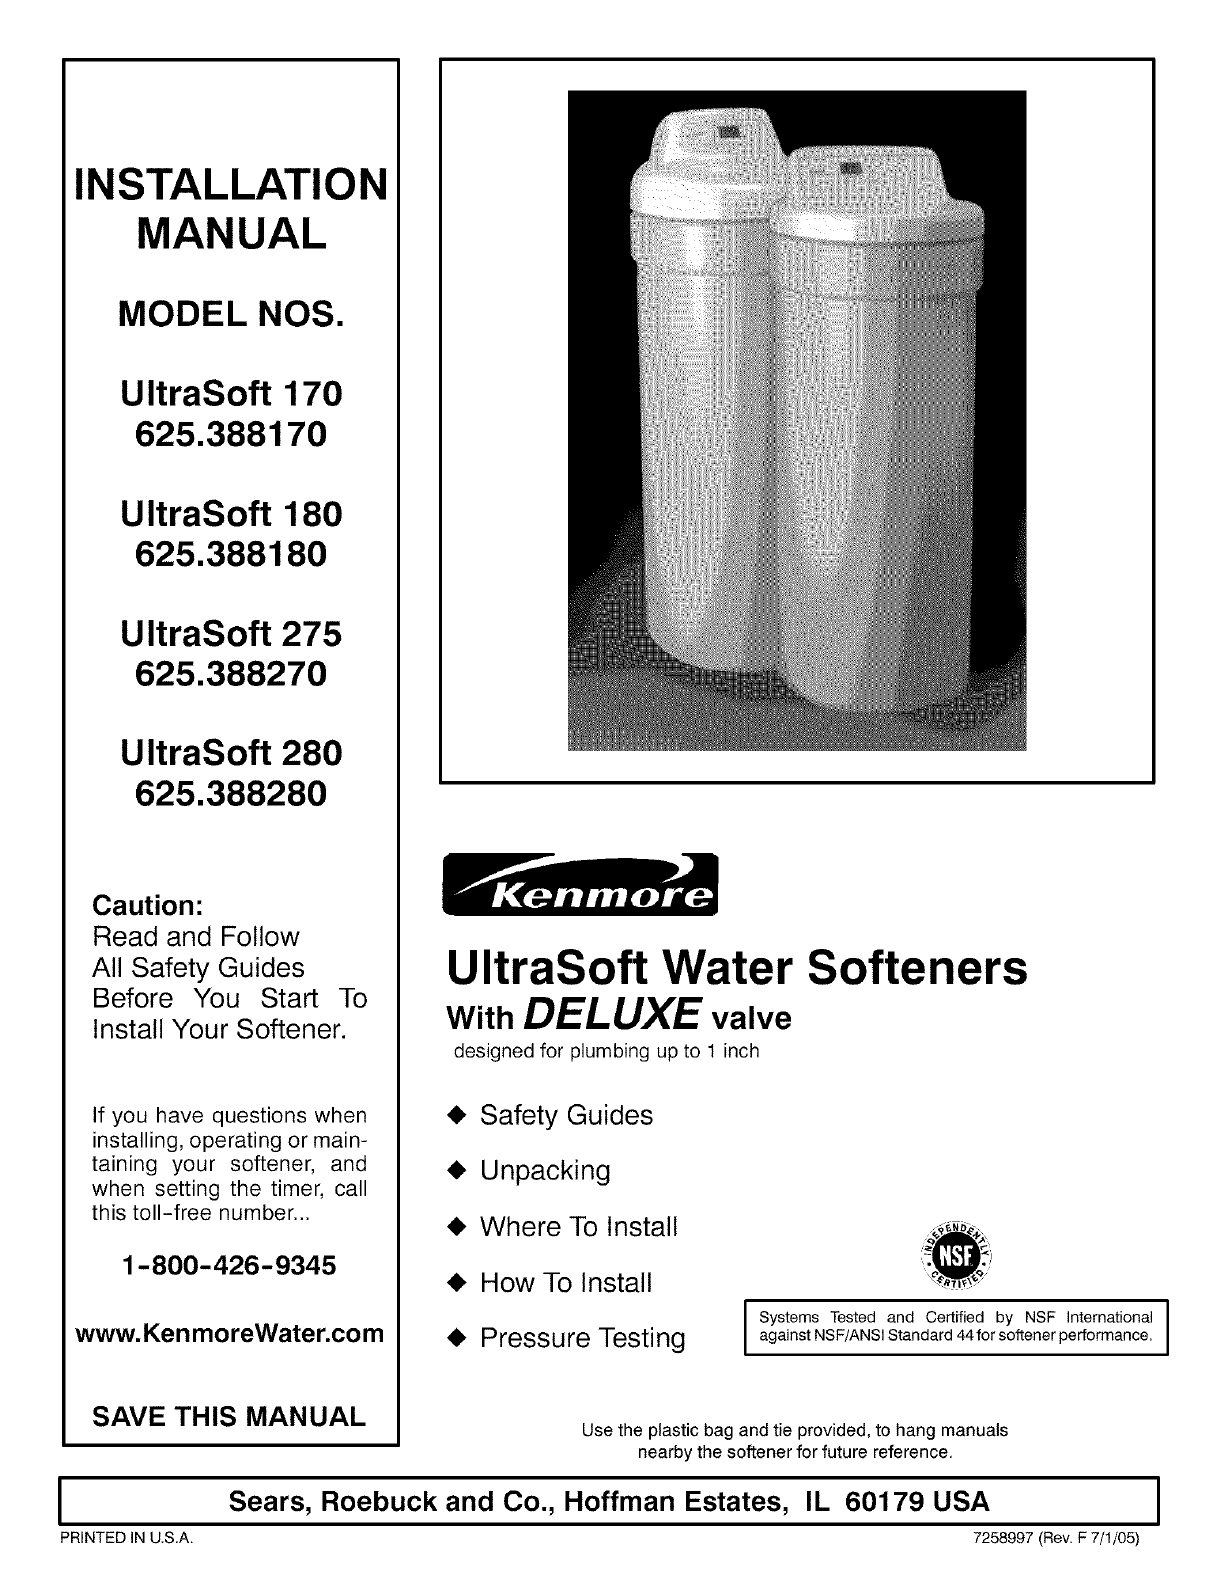 How To Start A Water Softener Kenmore Water System 275 User Guide Manualsonlinecom